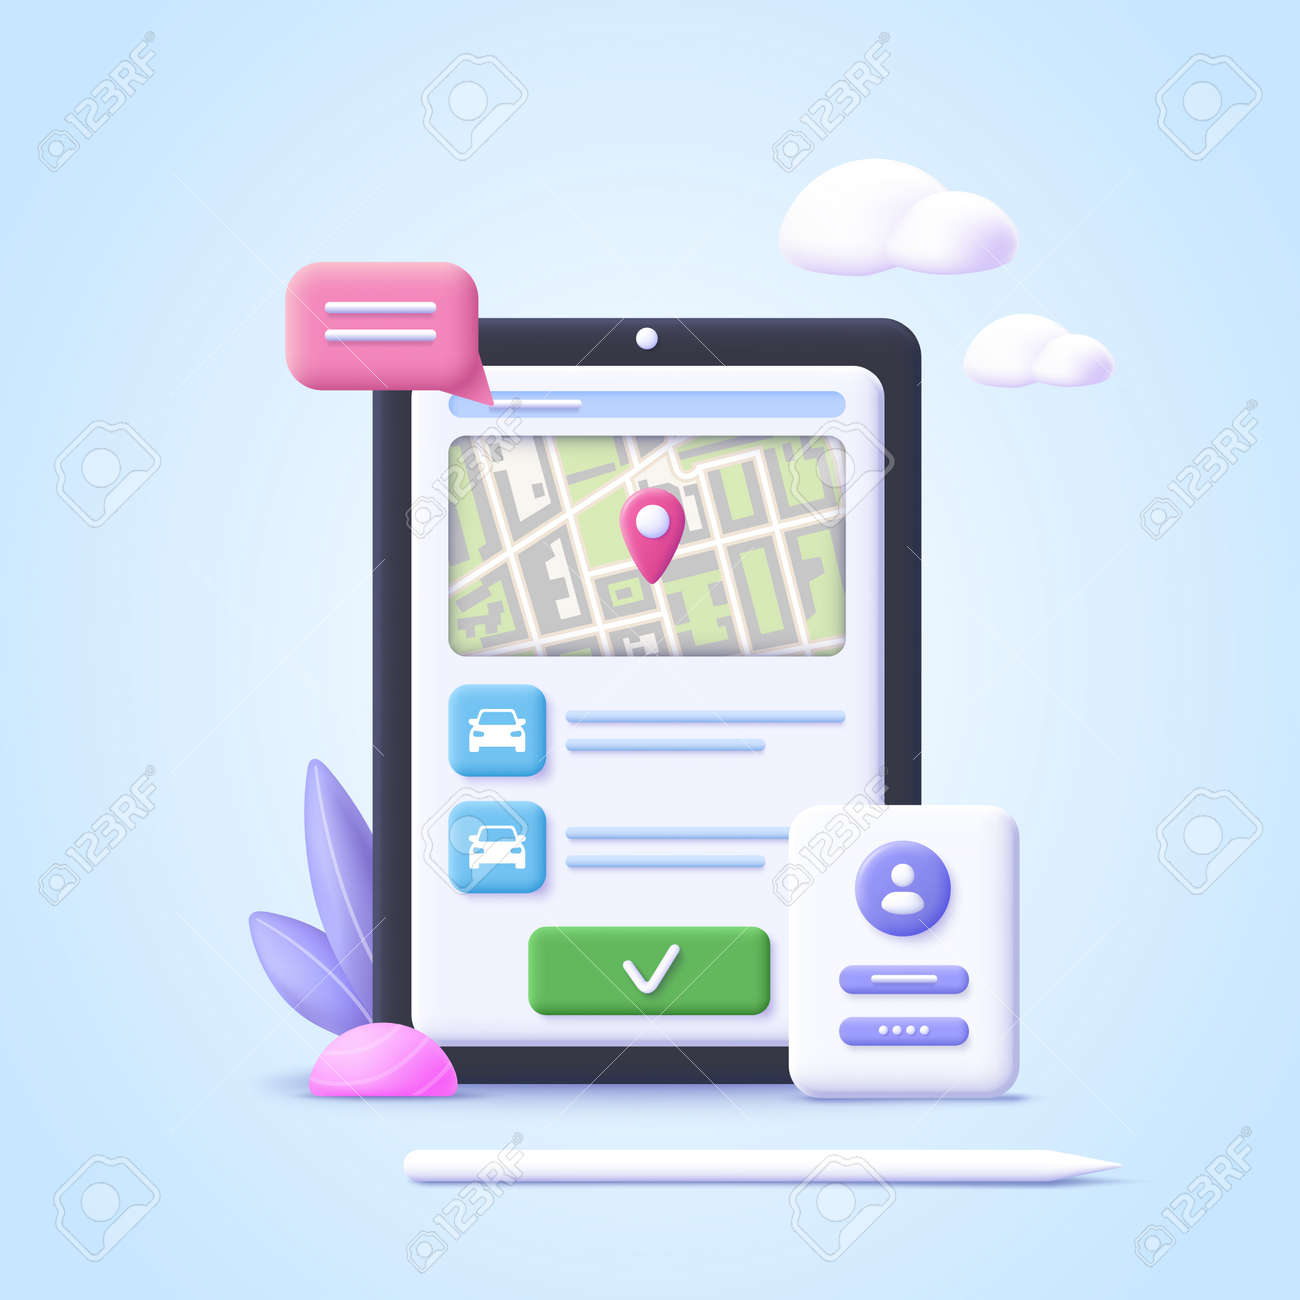 Concept of online car sharing service, ordering taxi car, rent. Smartphone app. Phone with location mark and smart car. 3d realistic vector illustration. - 171546924